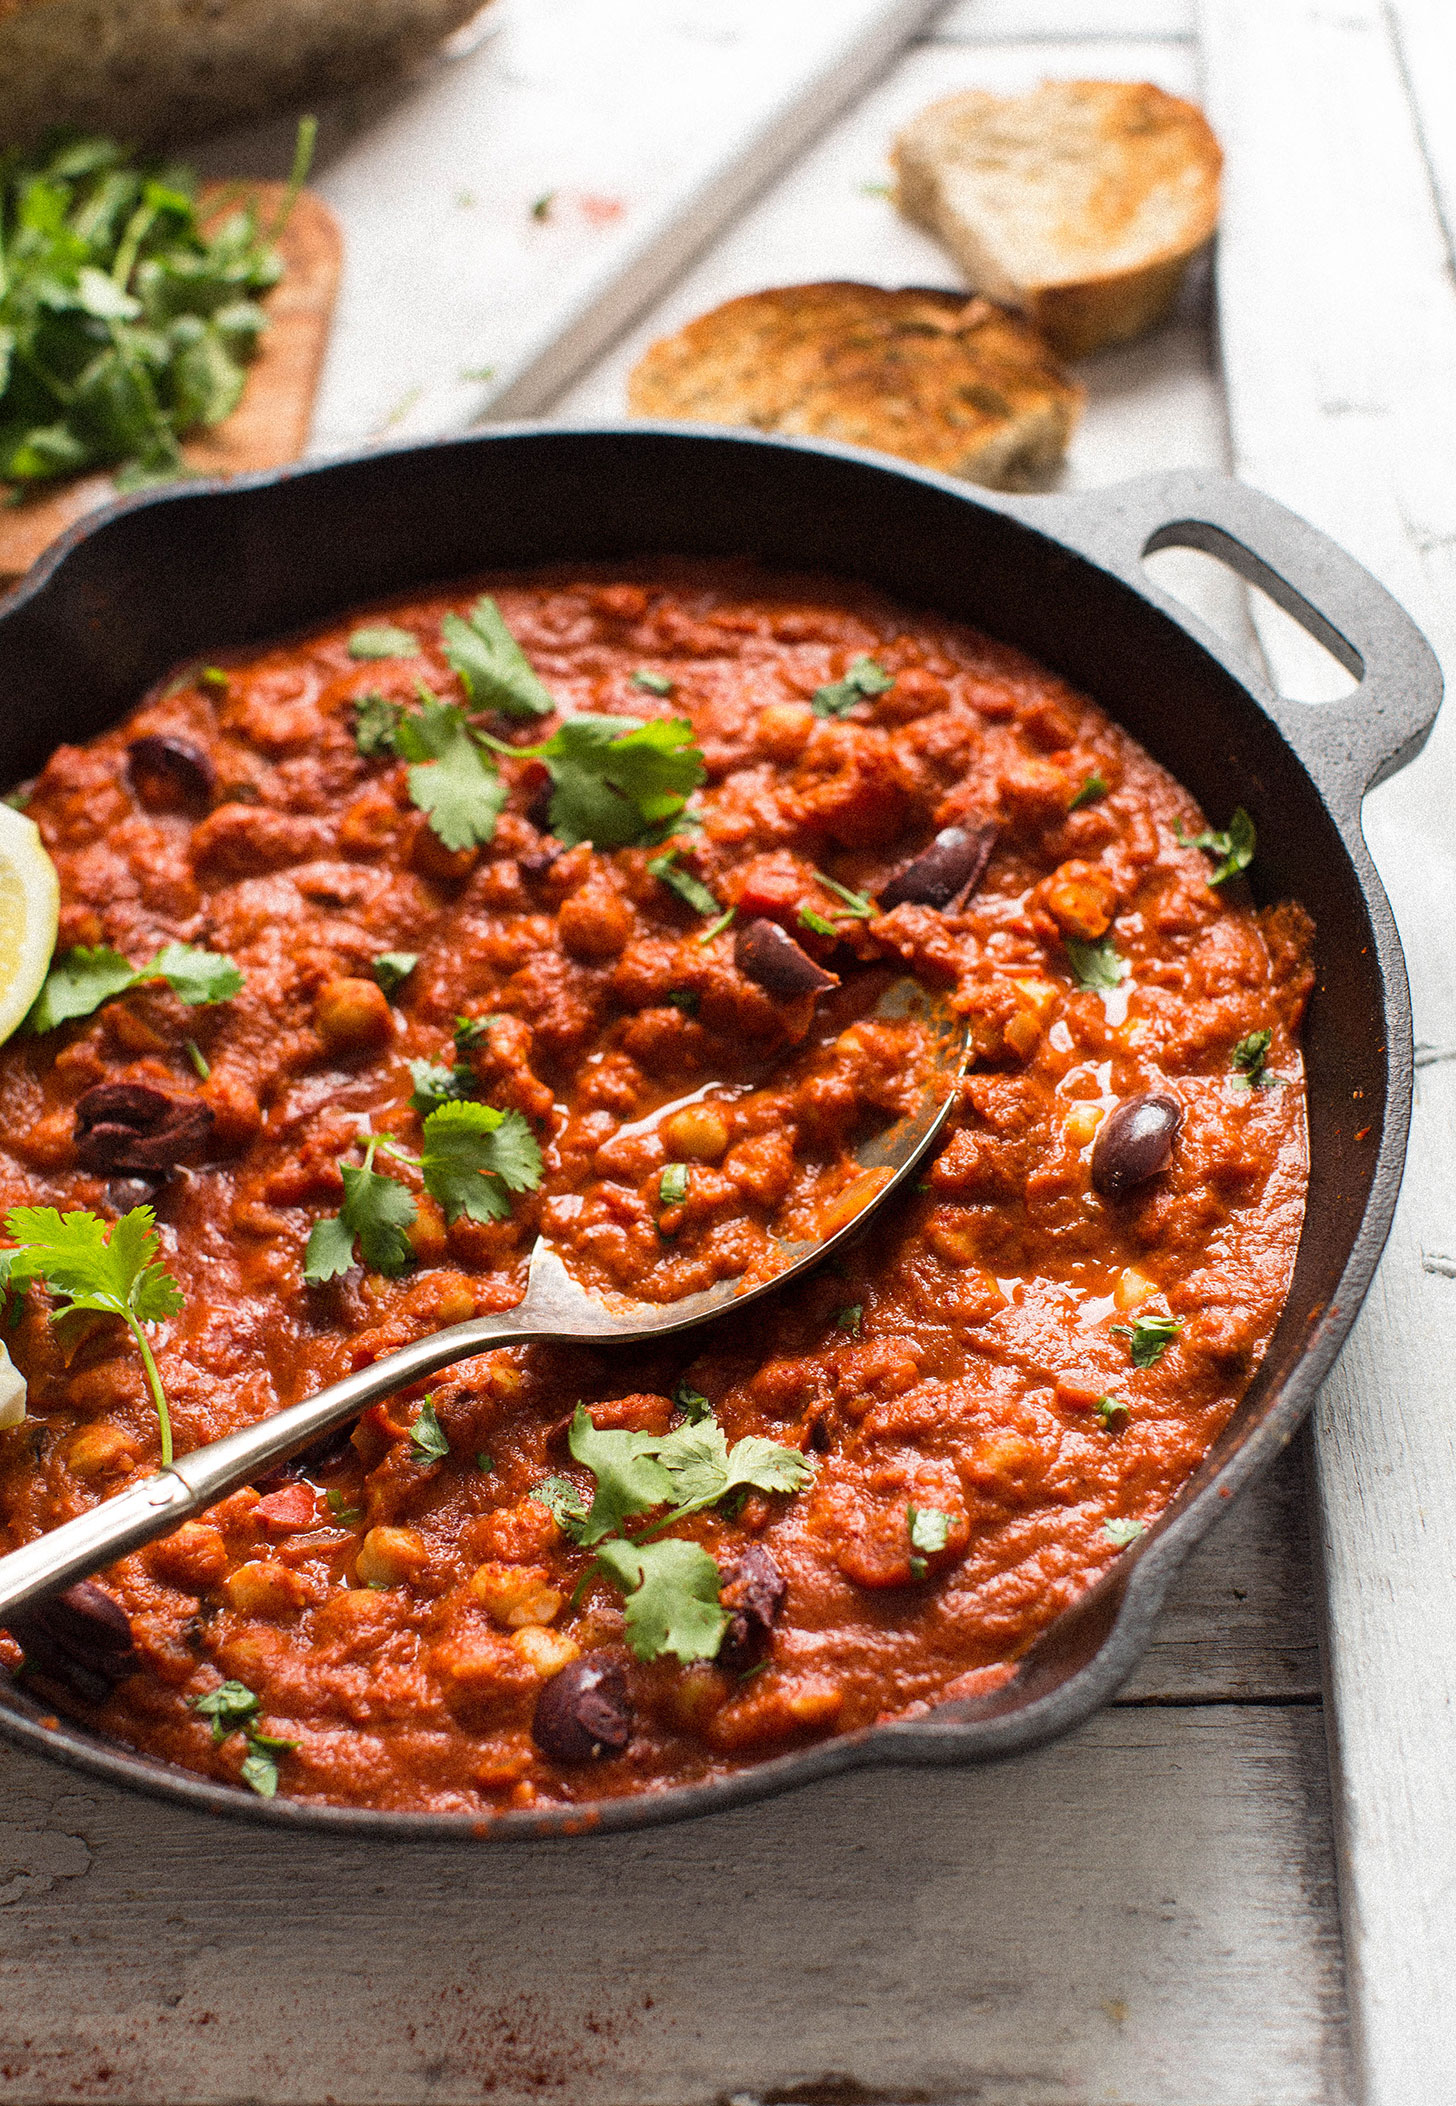 Skillet of Chickpea Shakshuka loaded with gluten-free plant-based protein